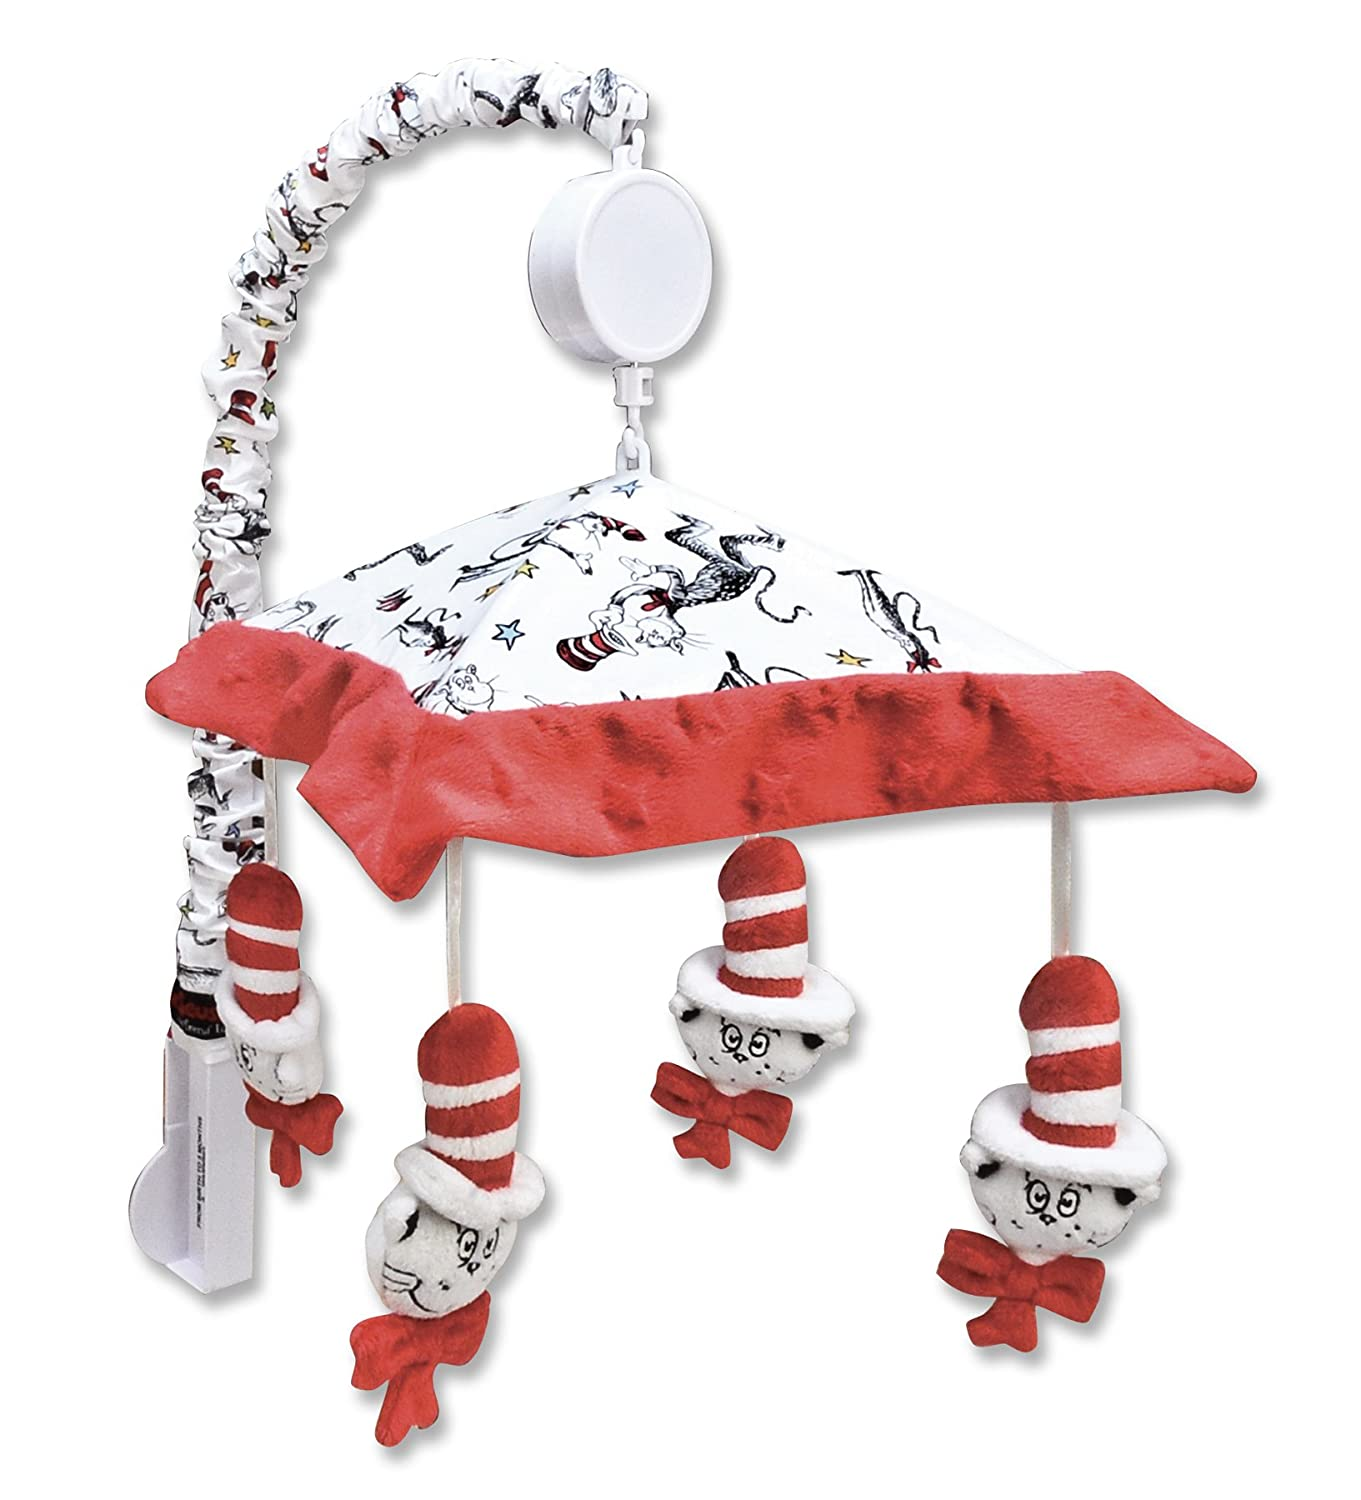 amazoncom  trend lab dr seuss mobile cat in the hat  nursery  - amazoncom  trend lab dr seuss mobile cat in the hat  nursery mobiles baby